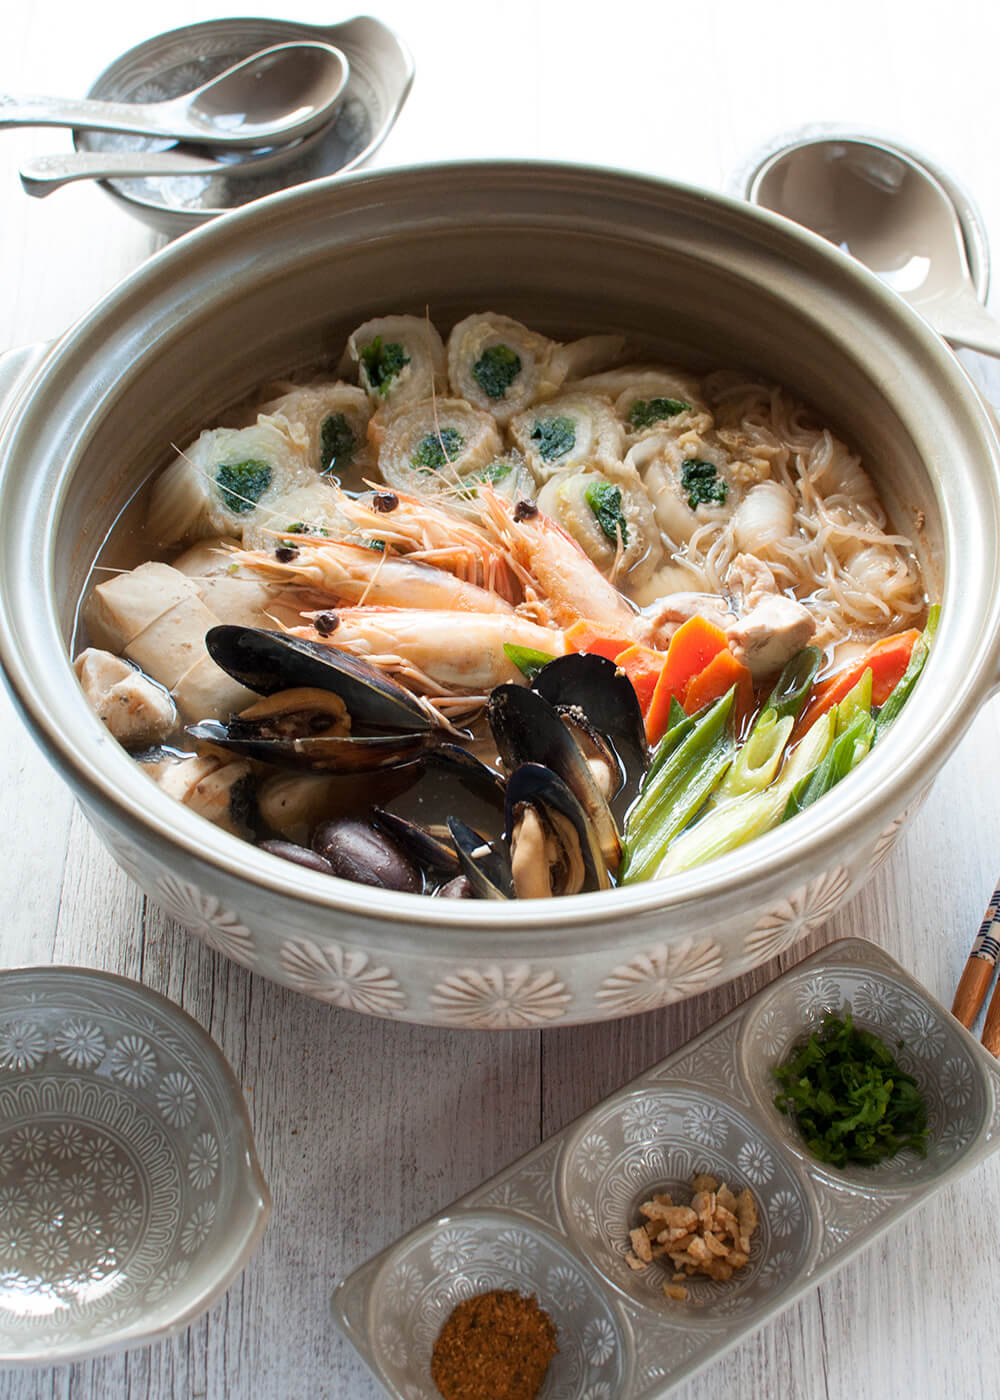 Yosenabe (寄せ鍋) is a Japanese hot pot packed with seafood, chicken and vegetables. https://japan.recipetineats.com